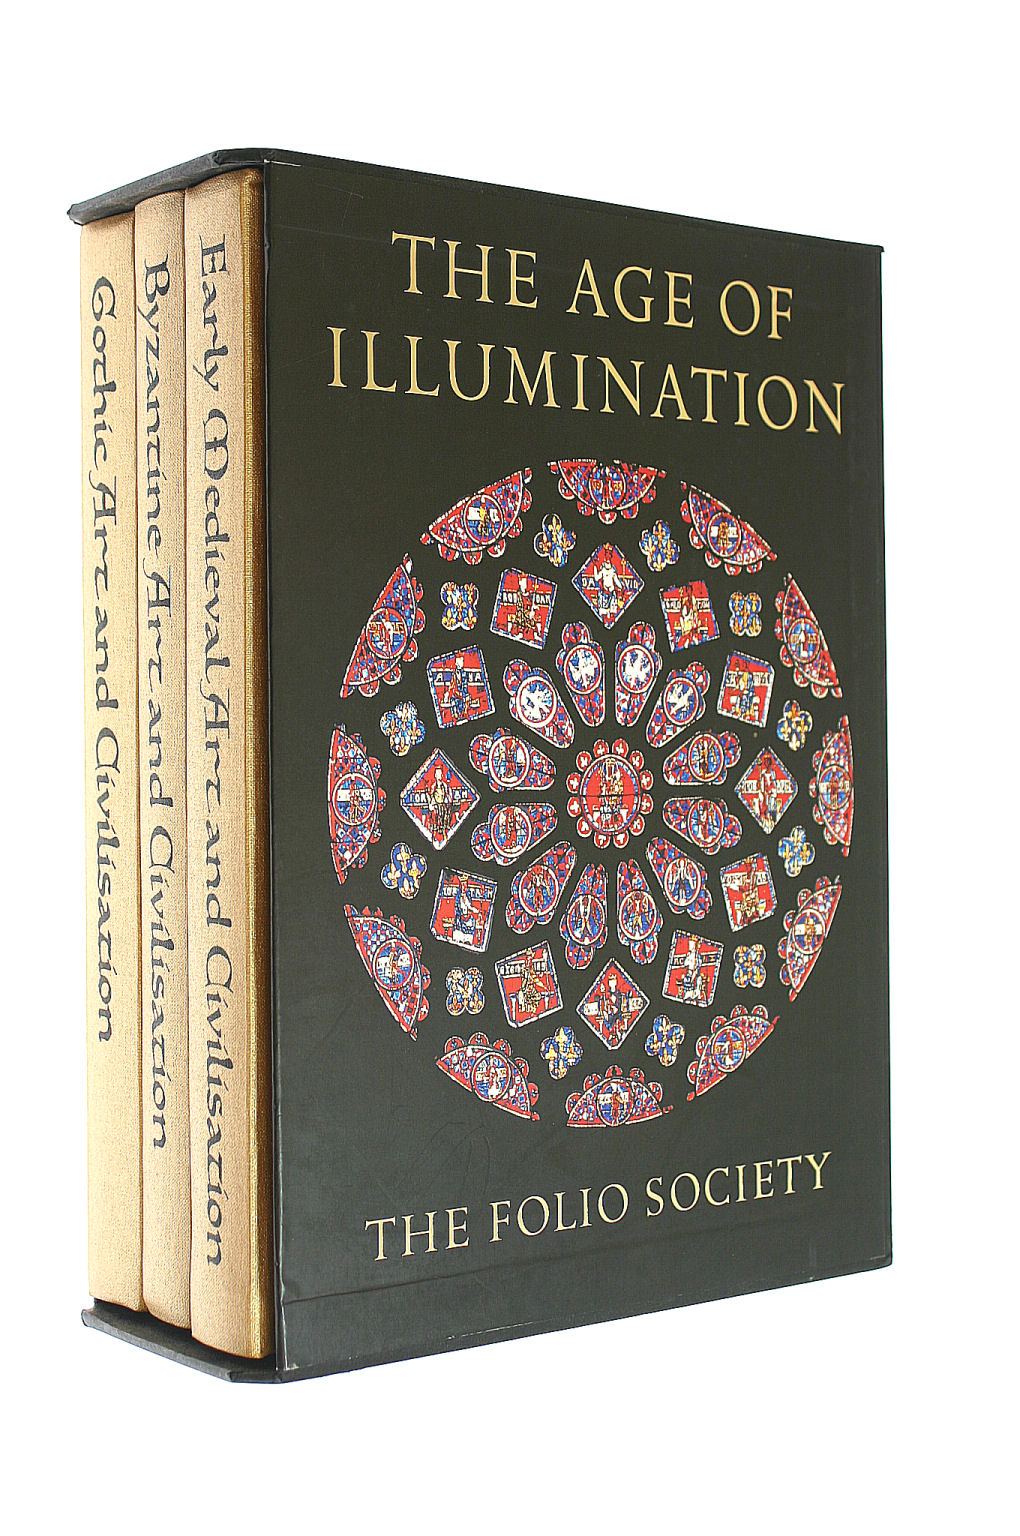 Image for The Age of illumination: Byzantine Art and Civilisation, Early Medieval Art and Civilisation, Gothic Art and Civilisation, [3 Volume Boxed-Set]